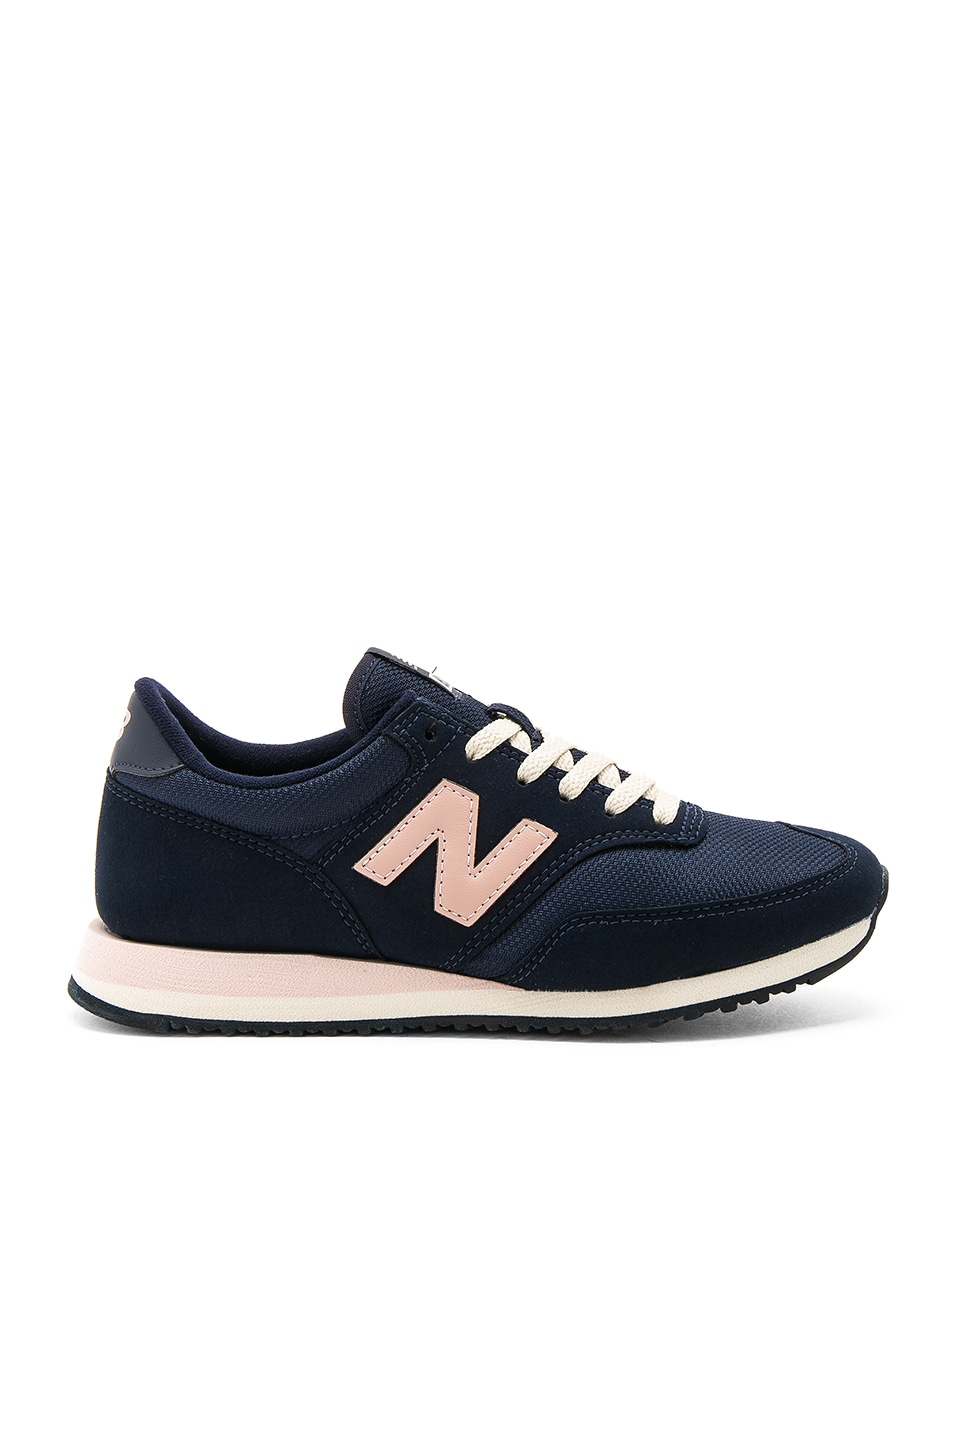 New Balance 620 Sneaker in Navy & Pink